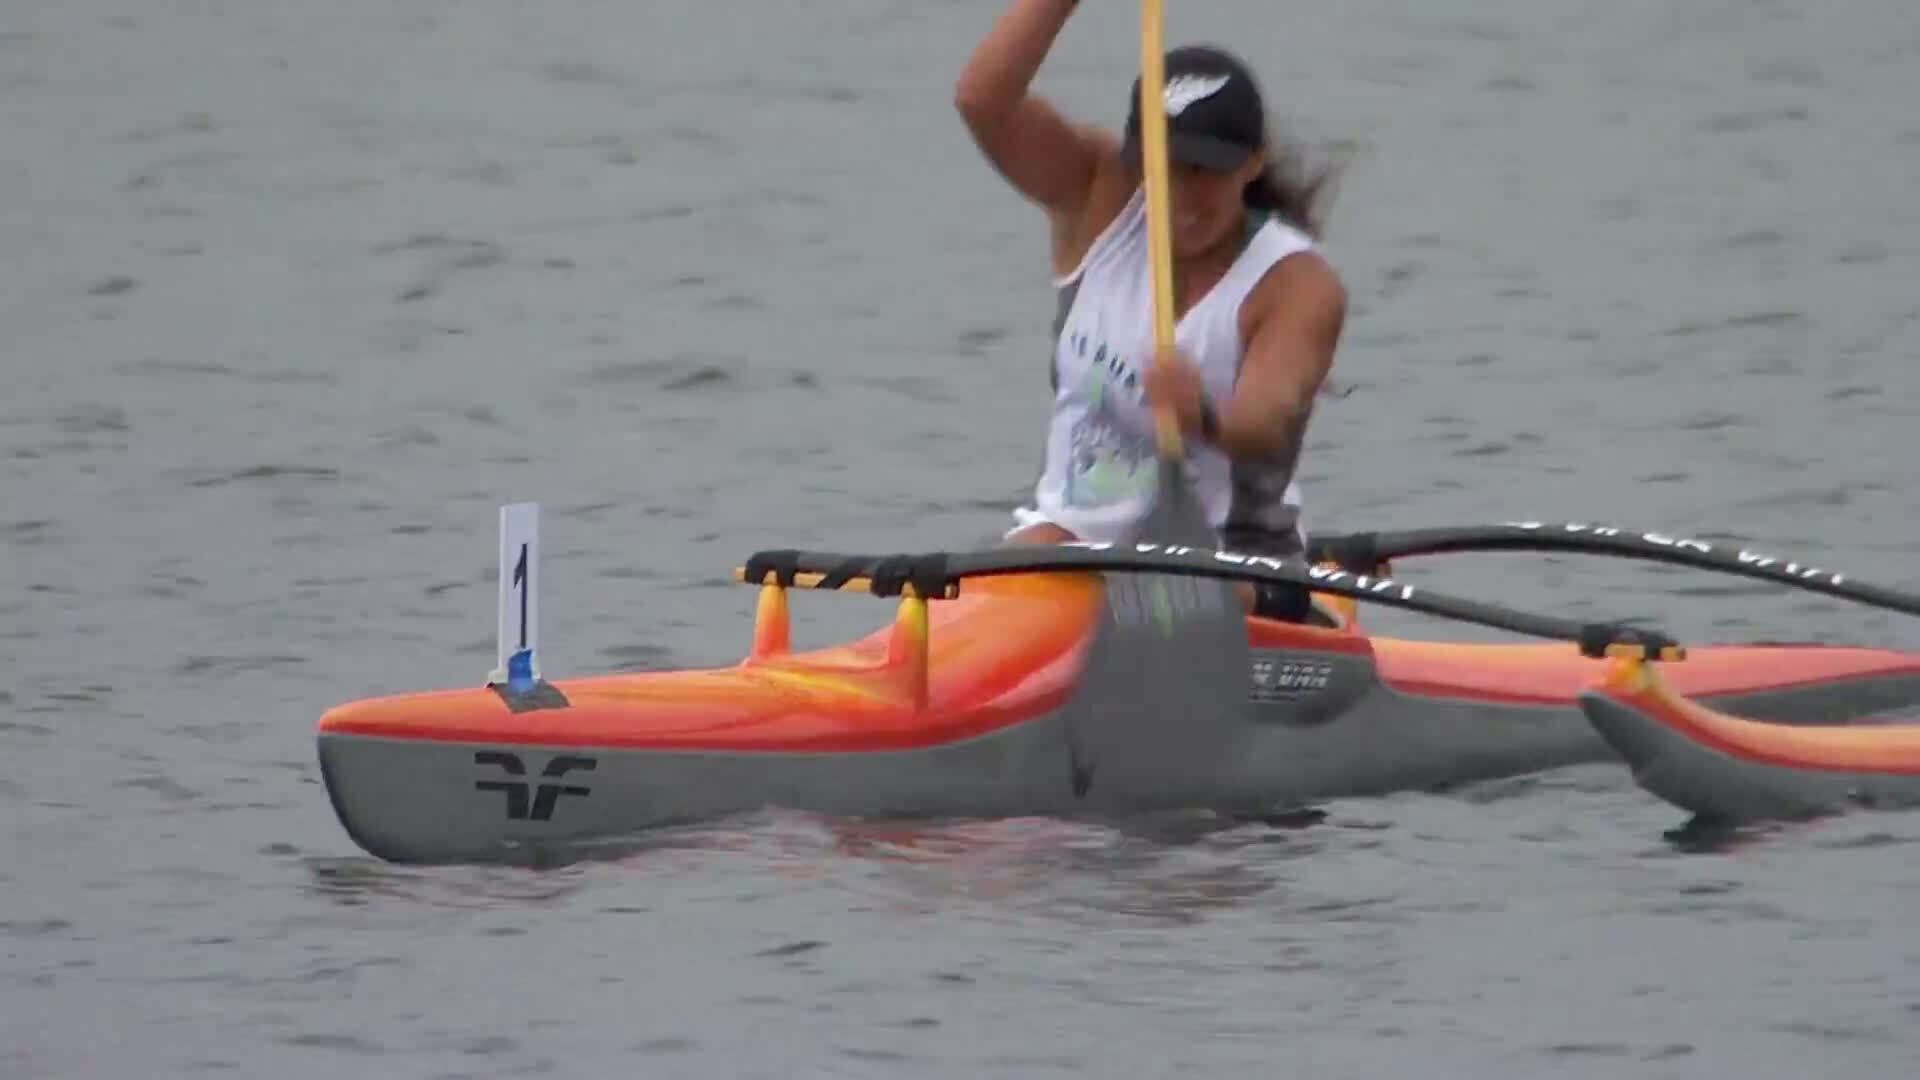 Video for Waka Ama Sprints 2018, Series 6 Episode 6